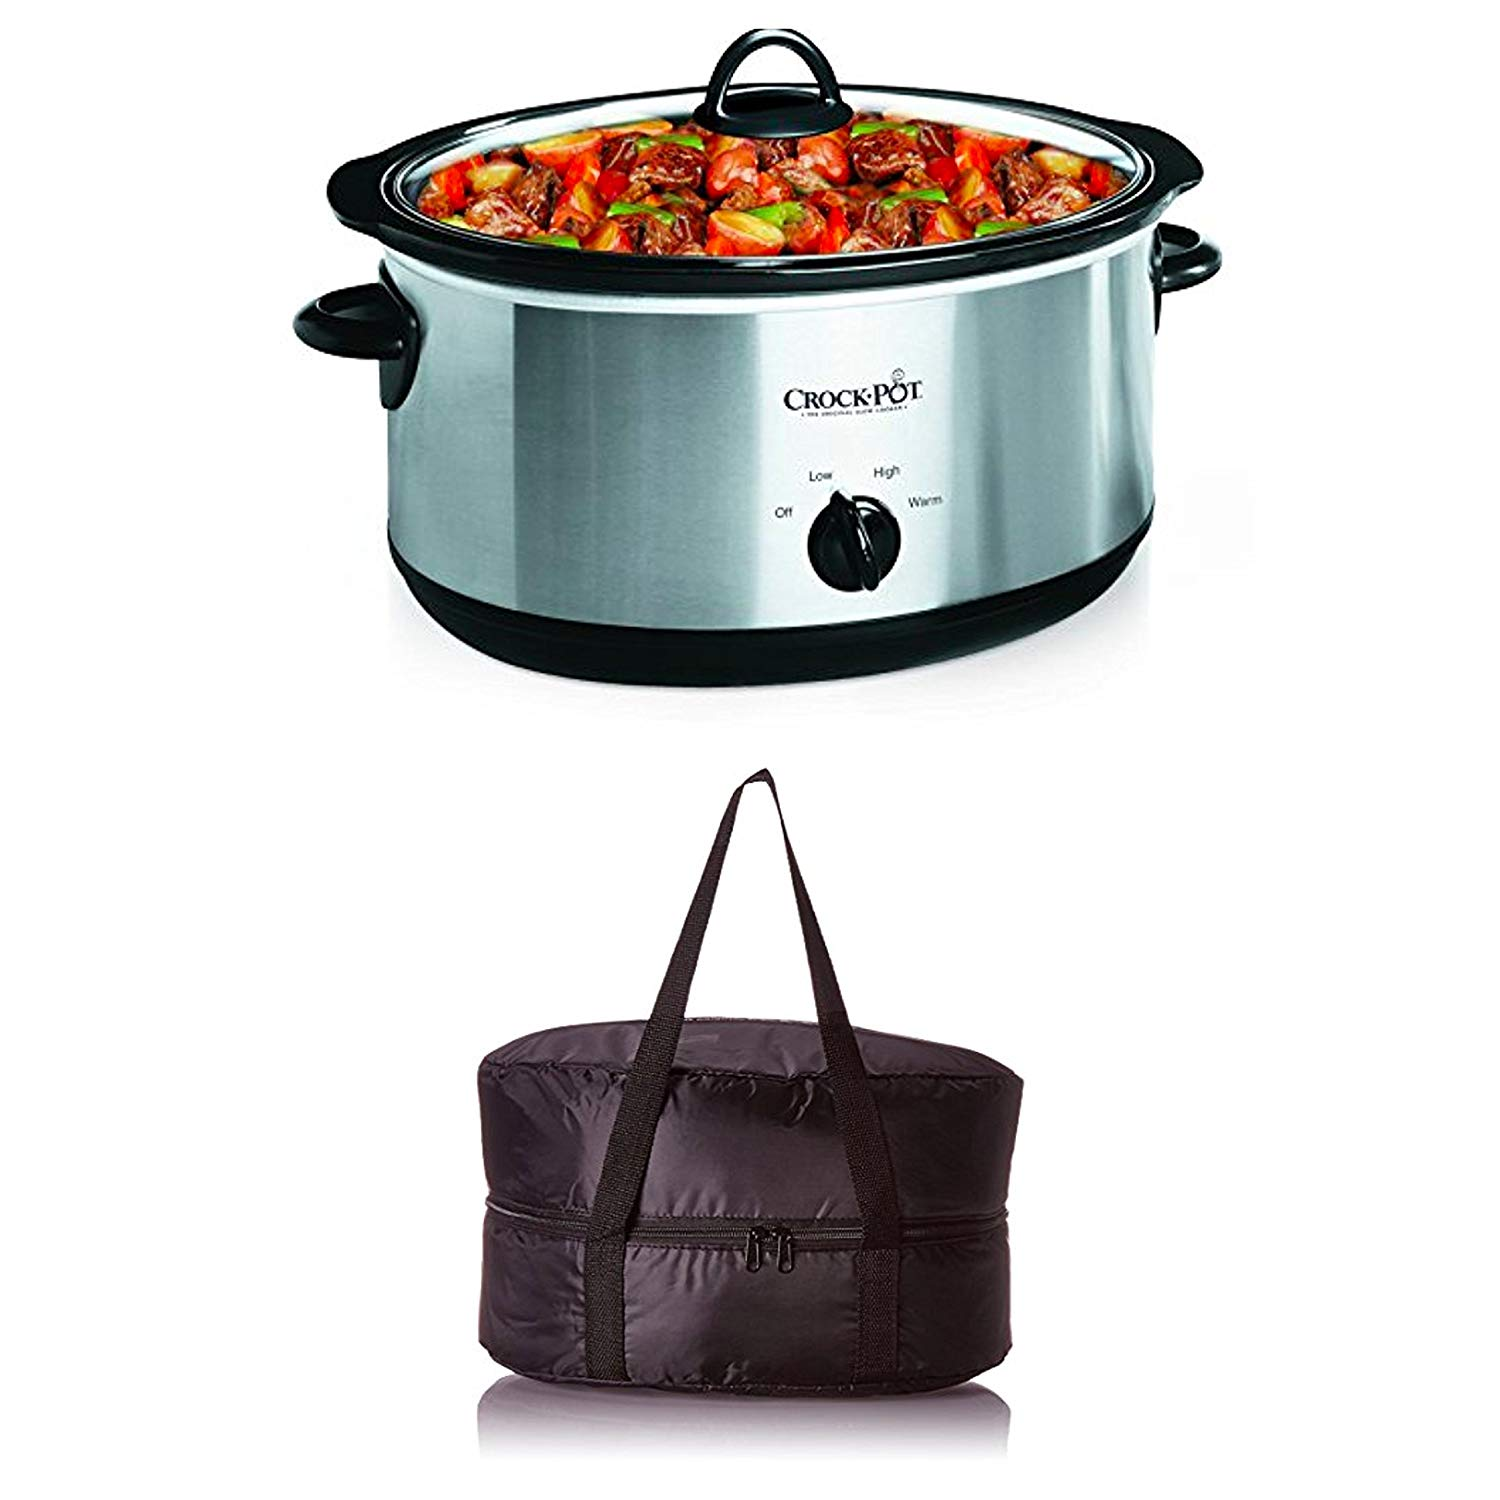 Bundle Includes 2 Items - Crock-Pot 7-Quart Oval Manual Slow Cooker, Stainless Steel (SCV700SS) and Crock-Pot Travel Bag for 7-Quart Slow Cookers, Black